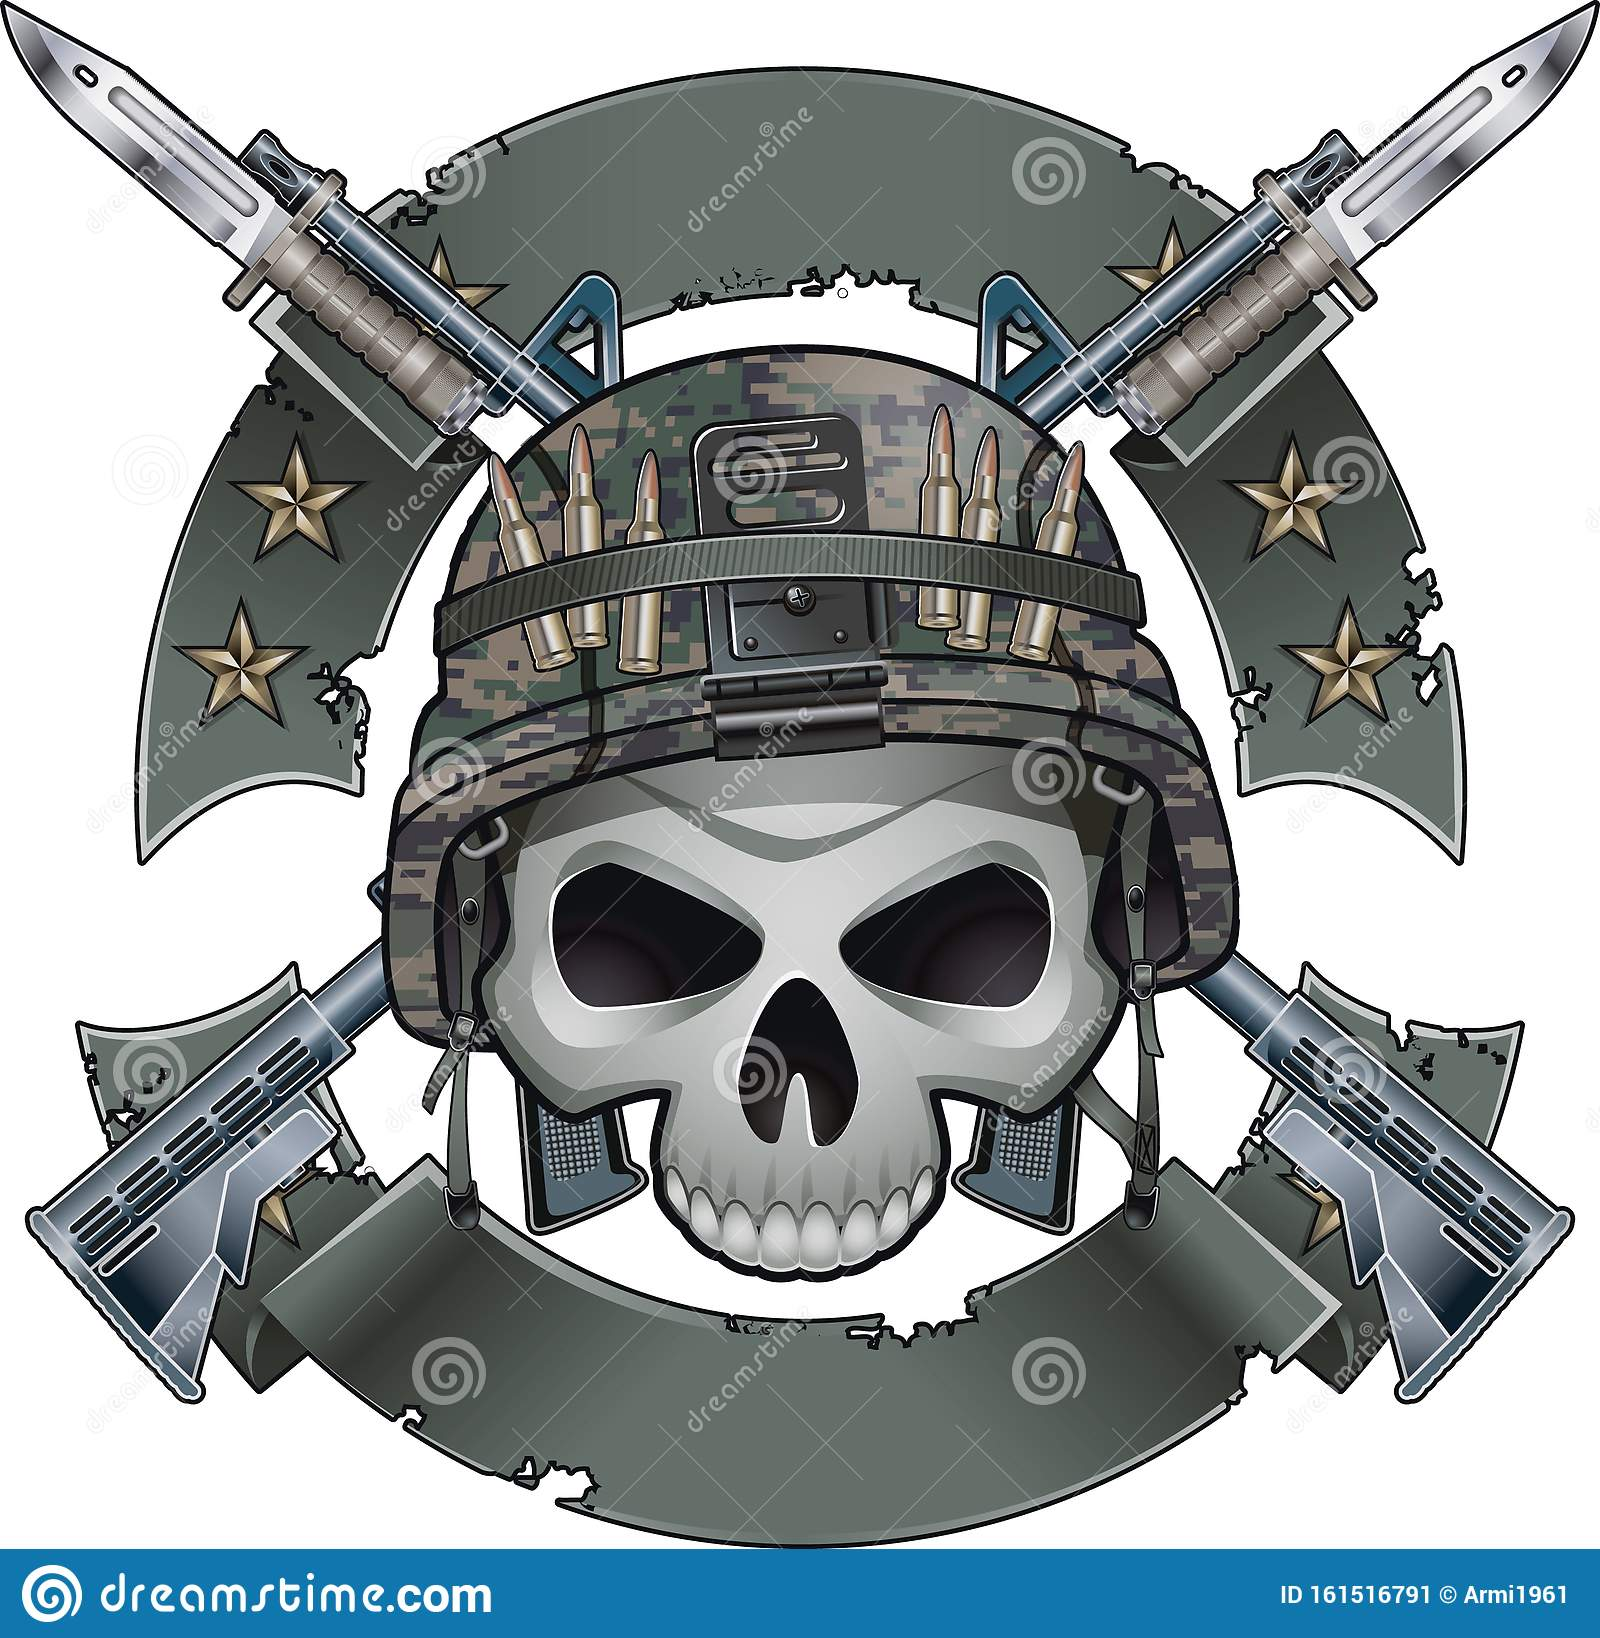 skull army helmet stock illustrations 683 skull army helmet stock illustrations vectors clipart dreamstime https www dreamstime com skull army helmet crossing assault rifles fixed bayonets banners editable scaleable vector illustration image161516791